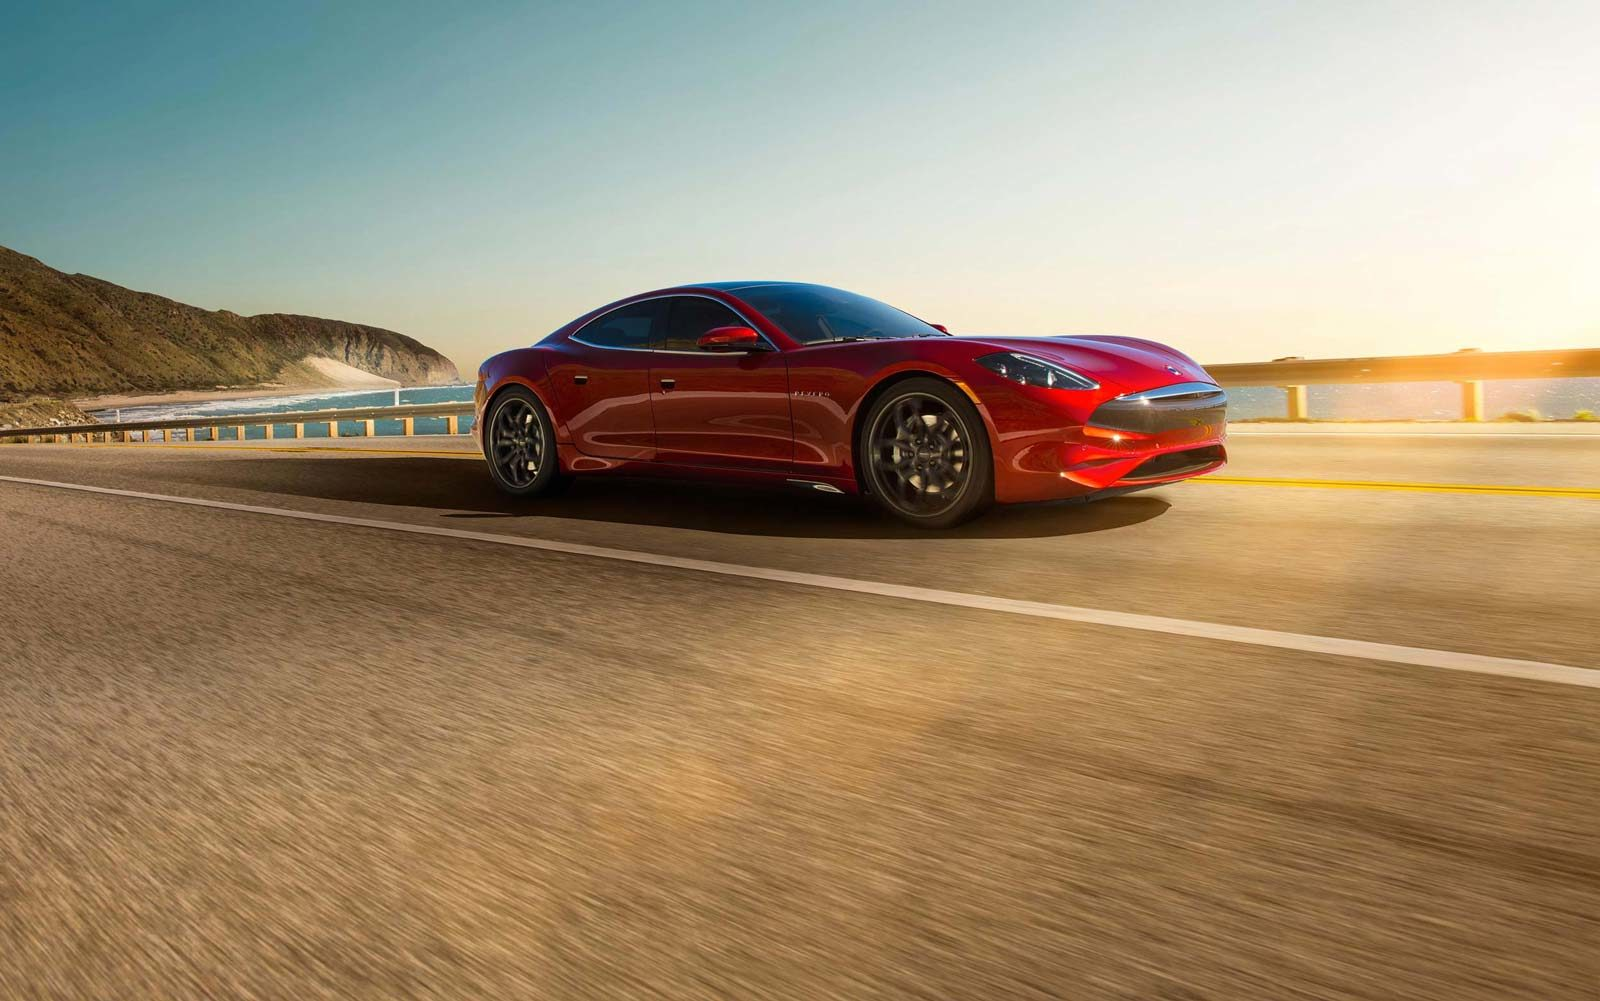 Karma Automotive Presents the Revero: Can this Phoenix Rise from the Ashes?